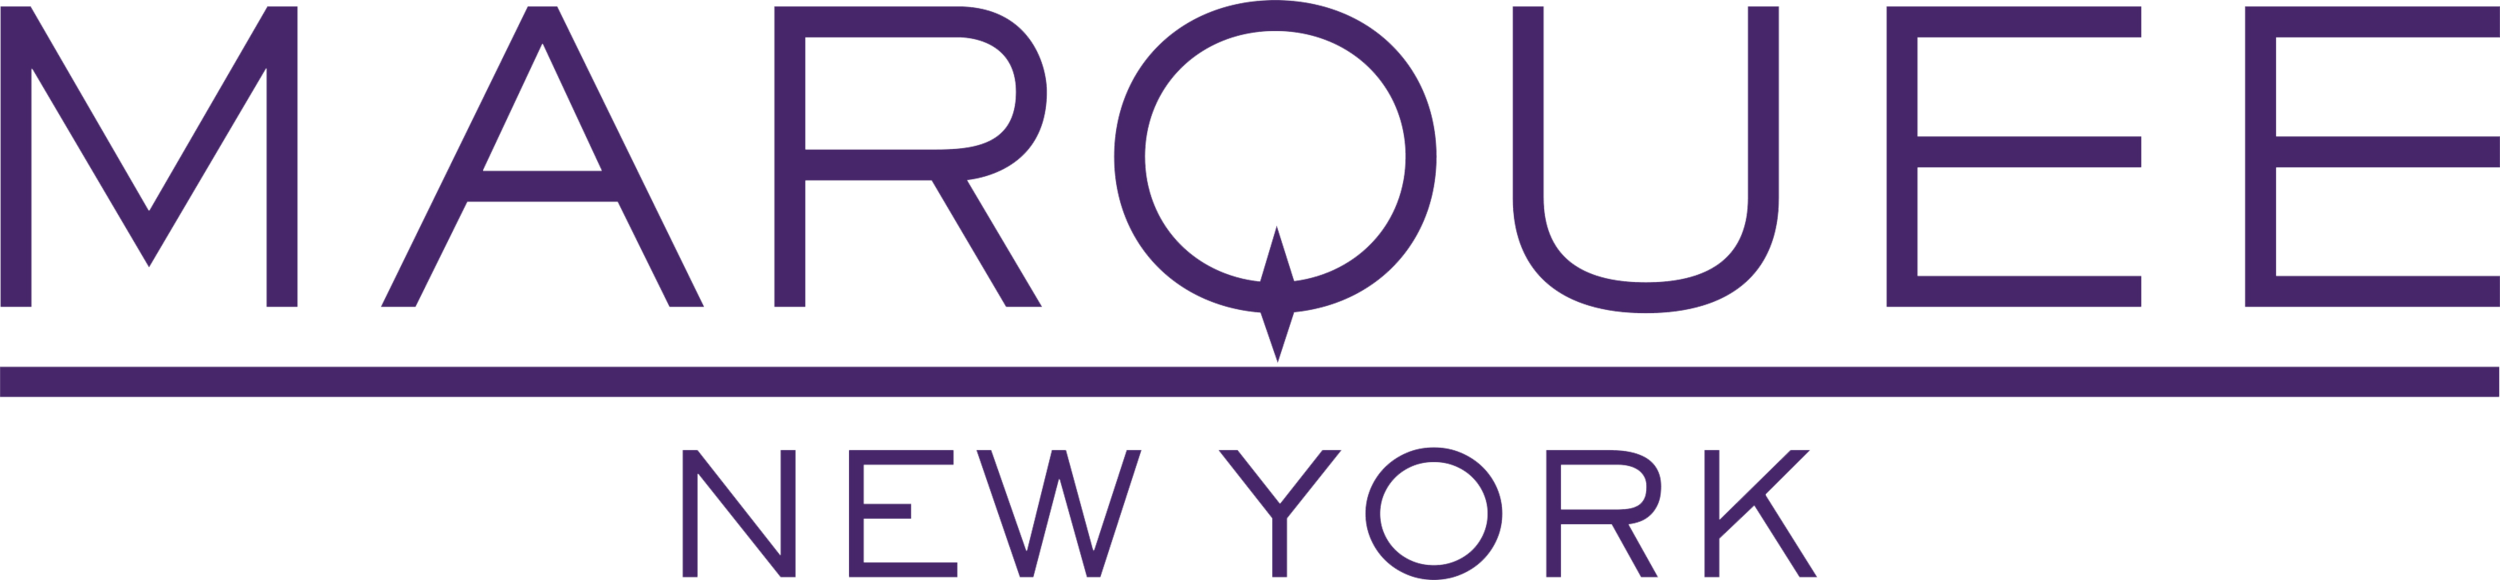 MarqueeNYC_logo.png